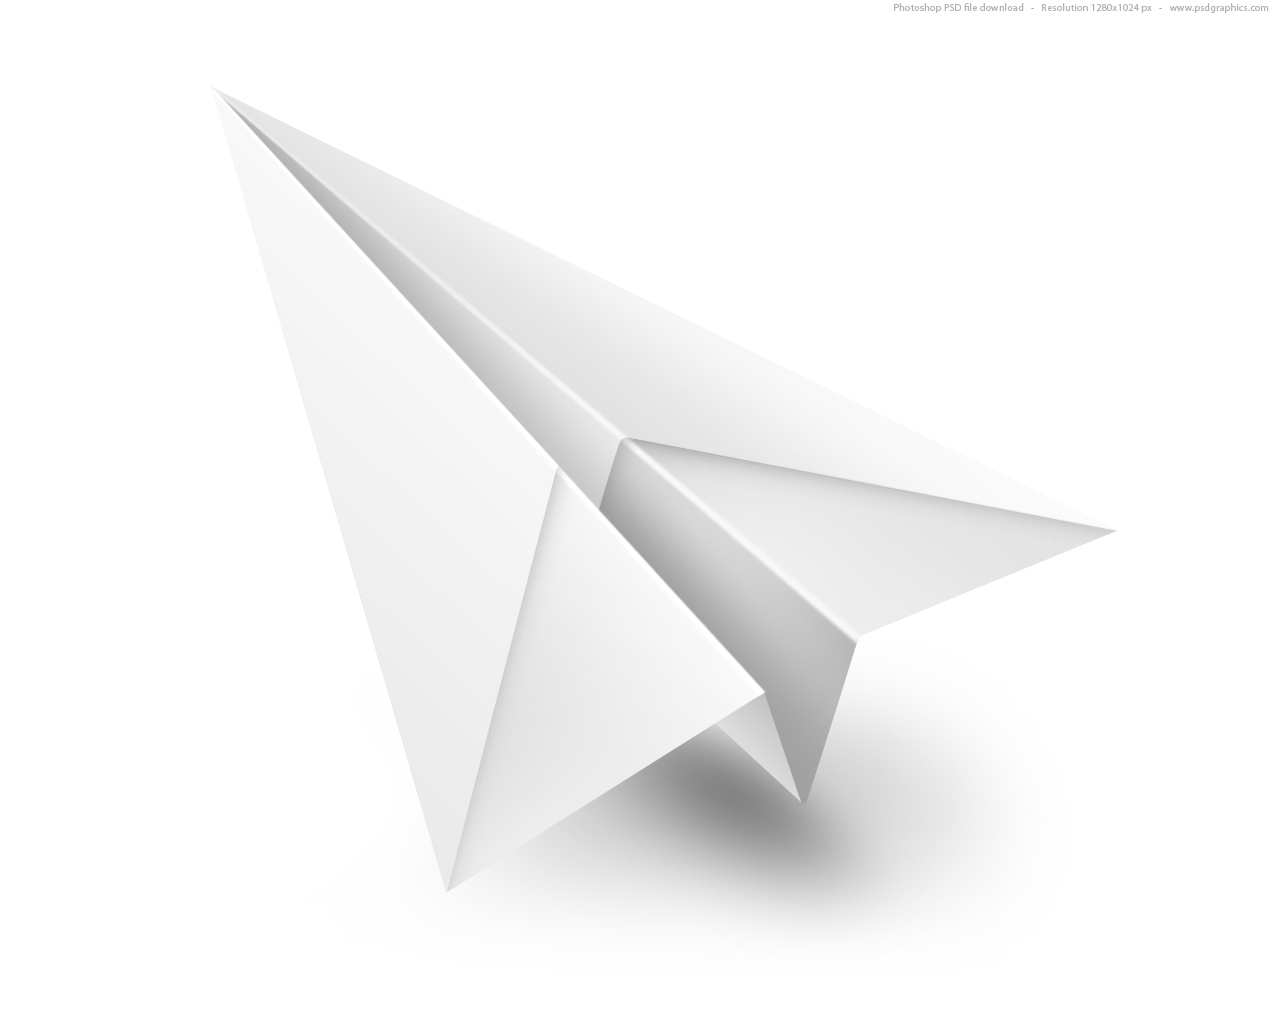 12 PSD Paper Airplanes Images